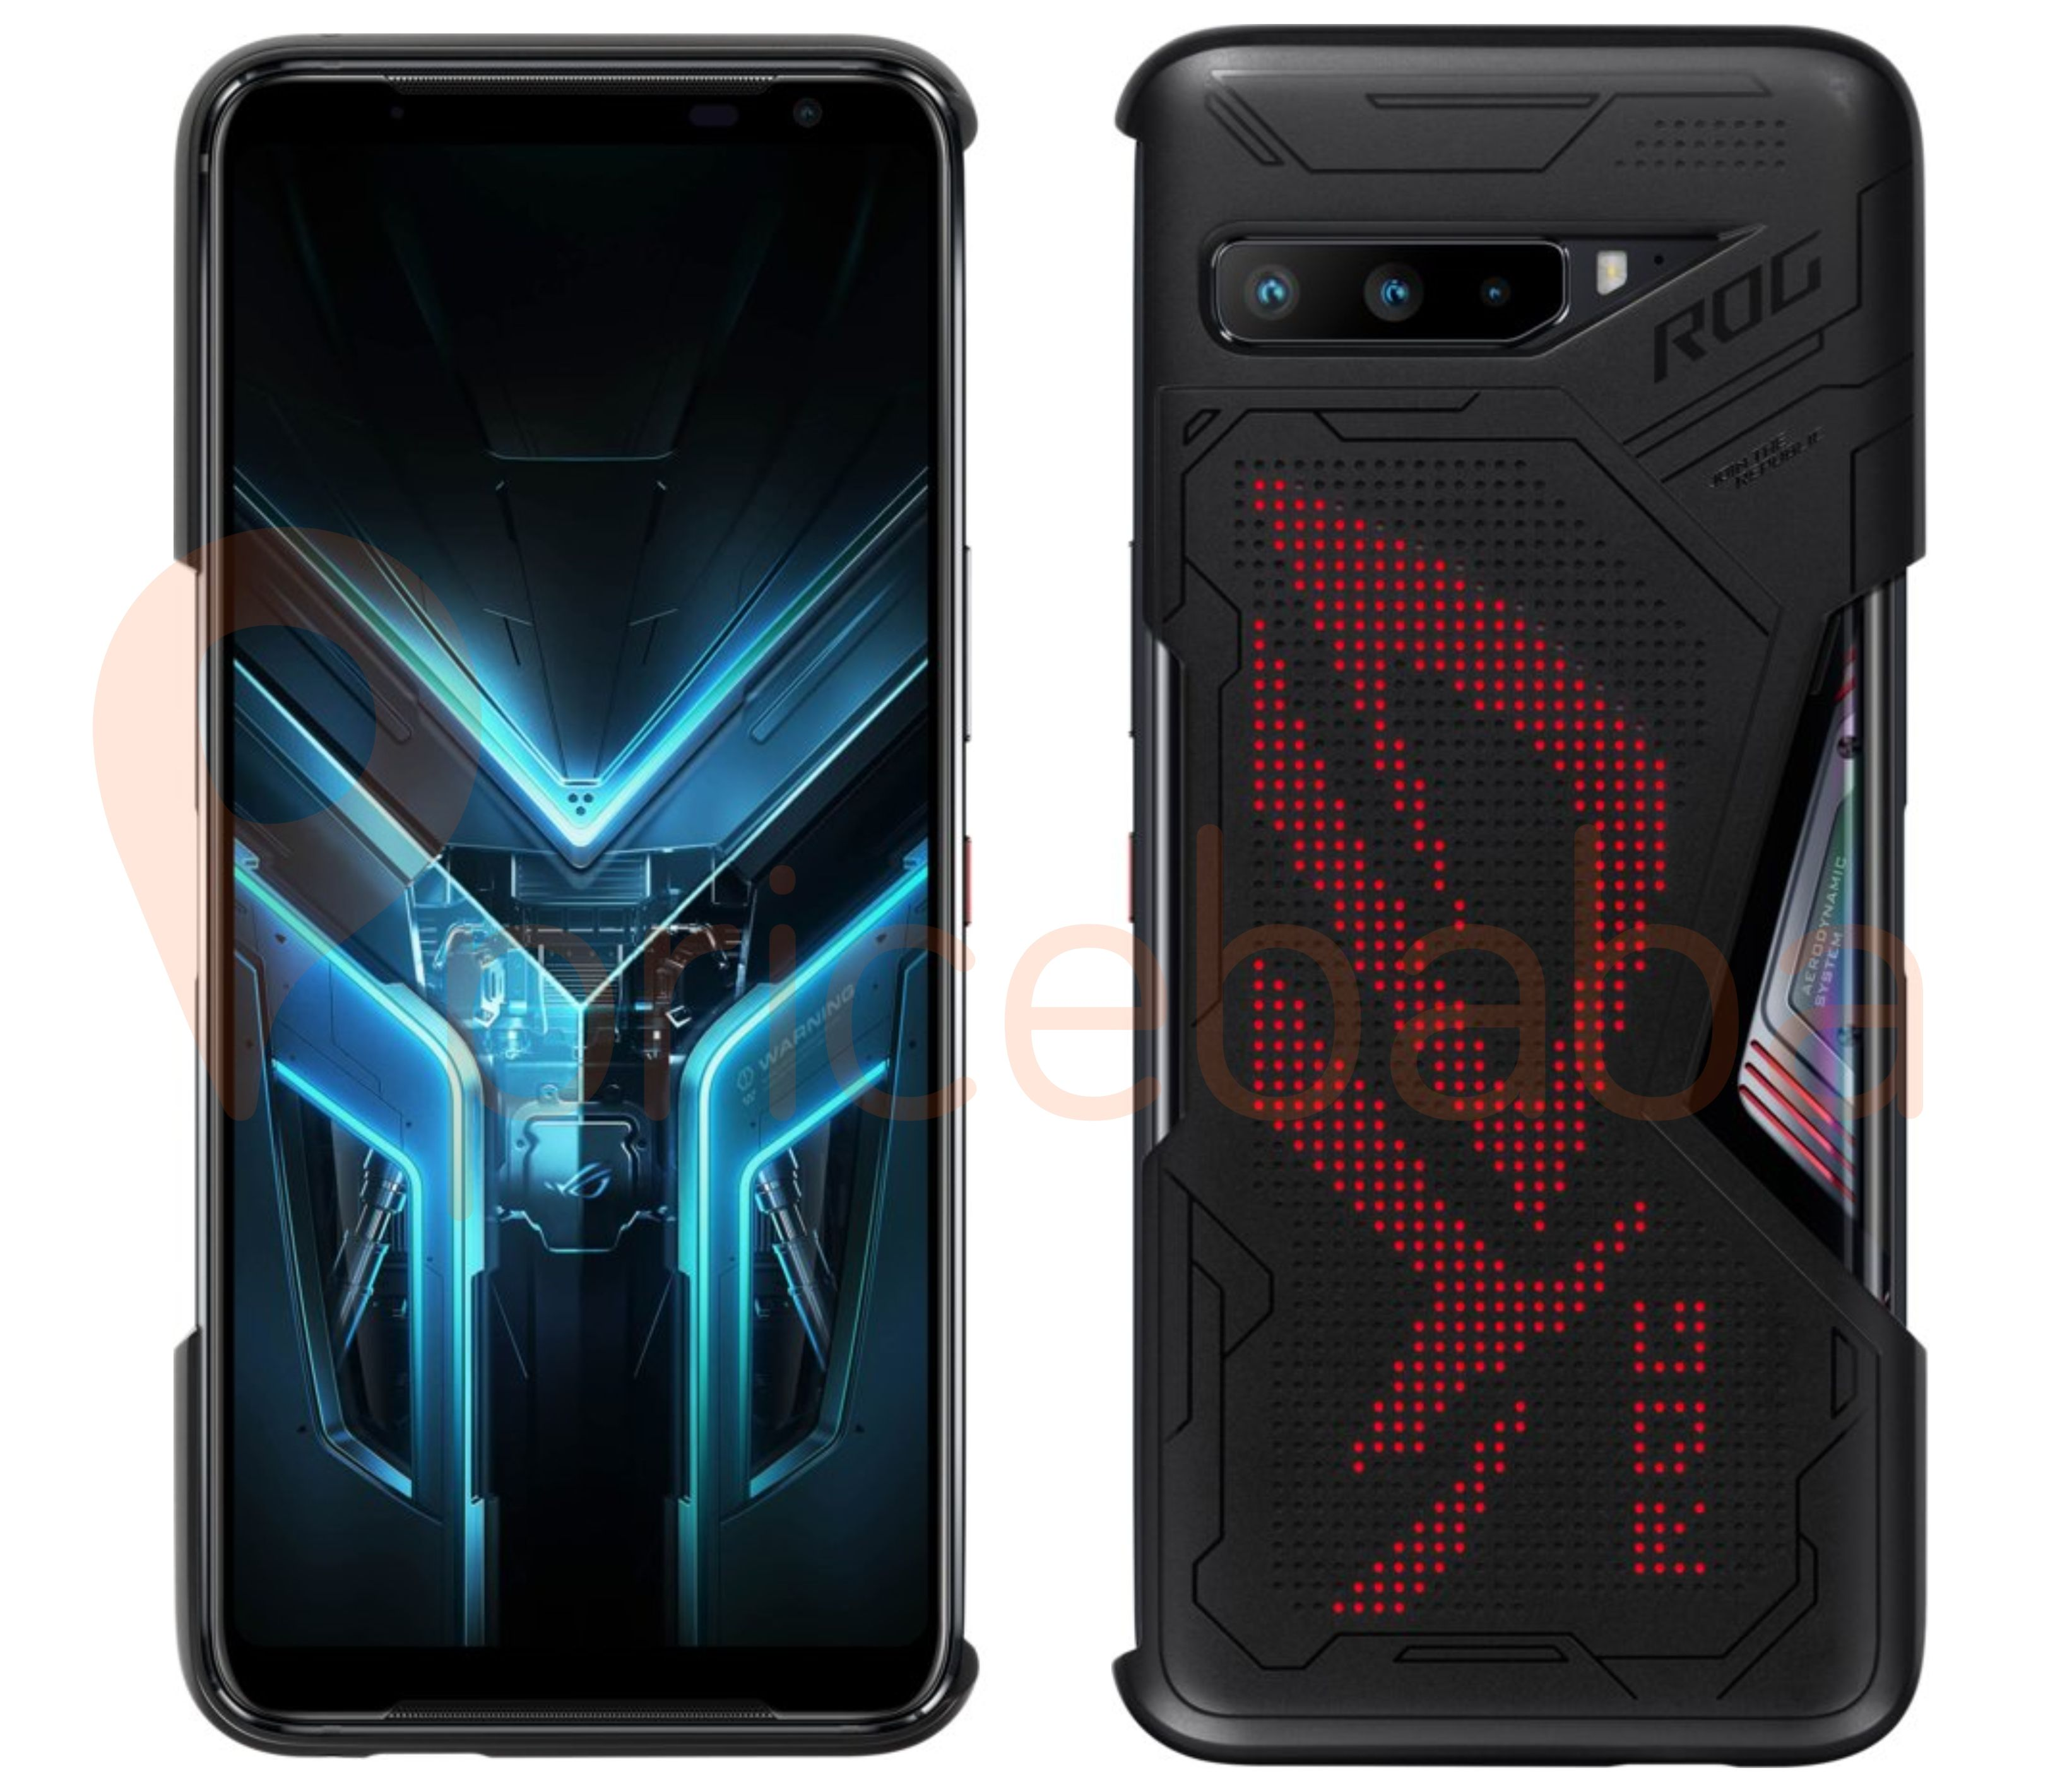 asus-rog-phone-3-accessories-01-1-jpg.11079